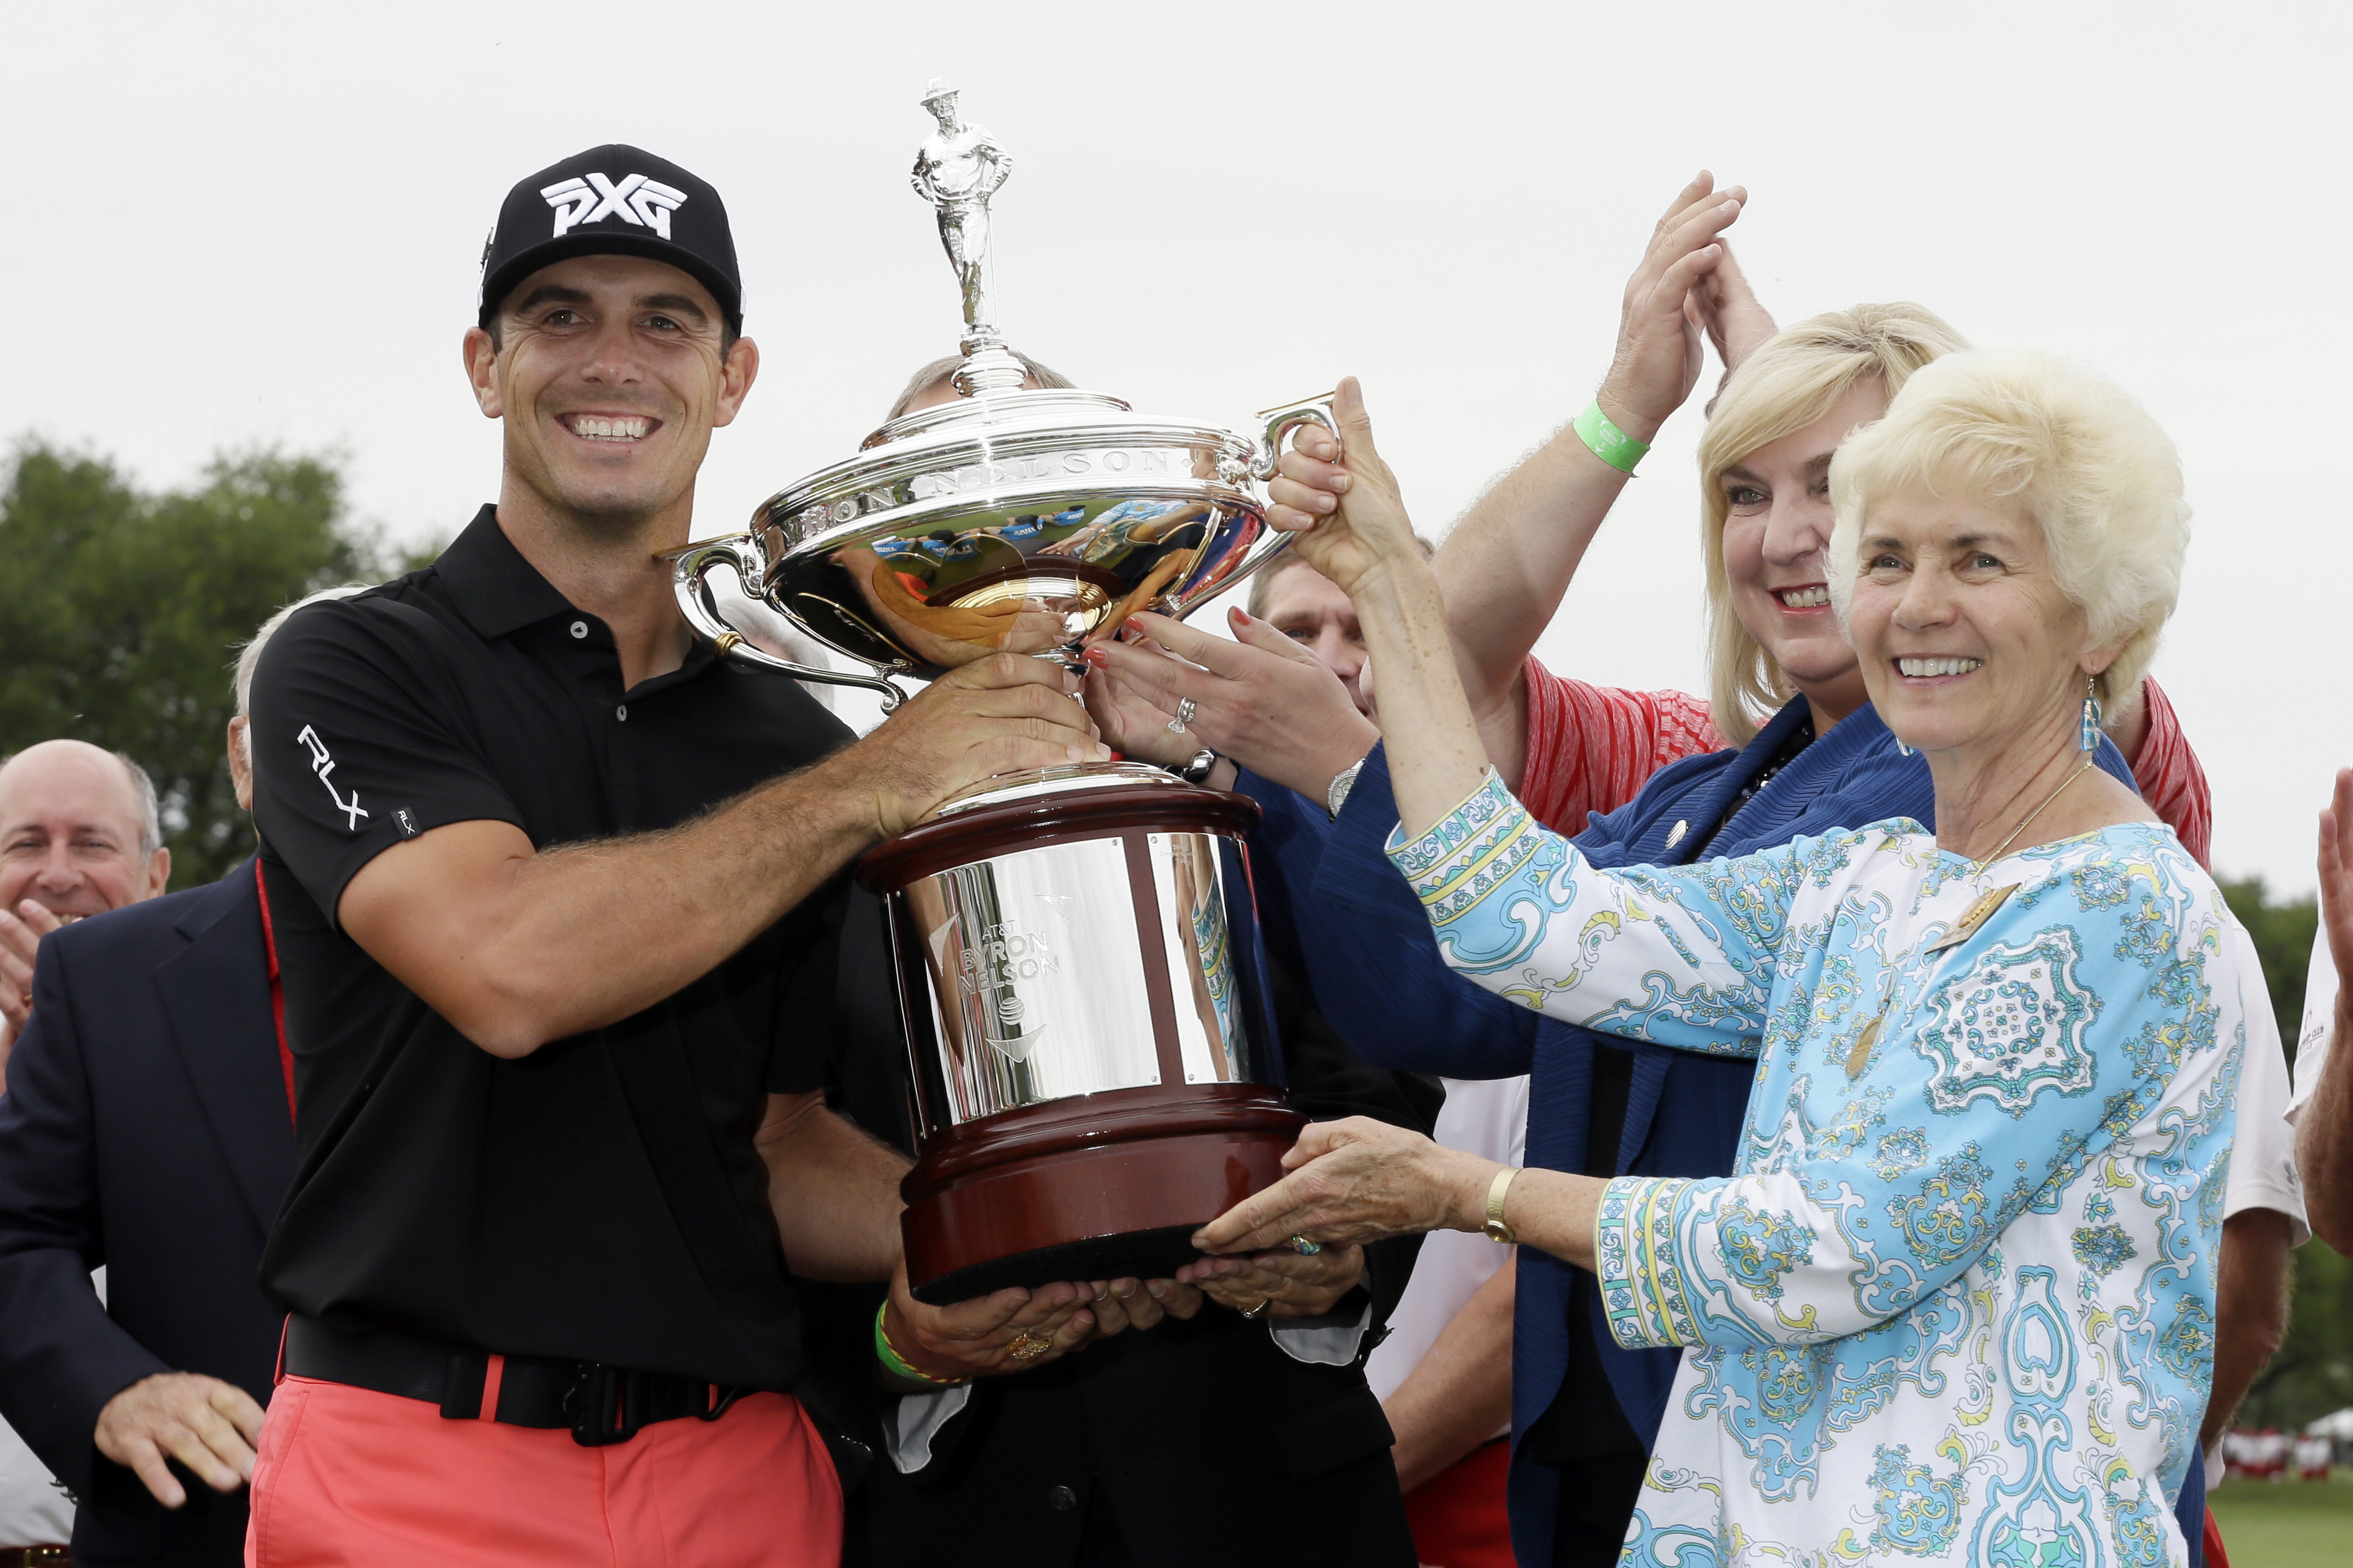 Billy Horschel is awarded the tournament trophy by Peggy Nelson, widow of Byron Nelson after Horschel's win in the Byron Nelson golf tournament, Sunday, May 21, 2017, in Irving, Texas. (AP Photo/Tony Gutierrez)